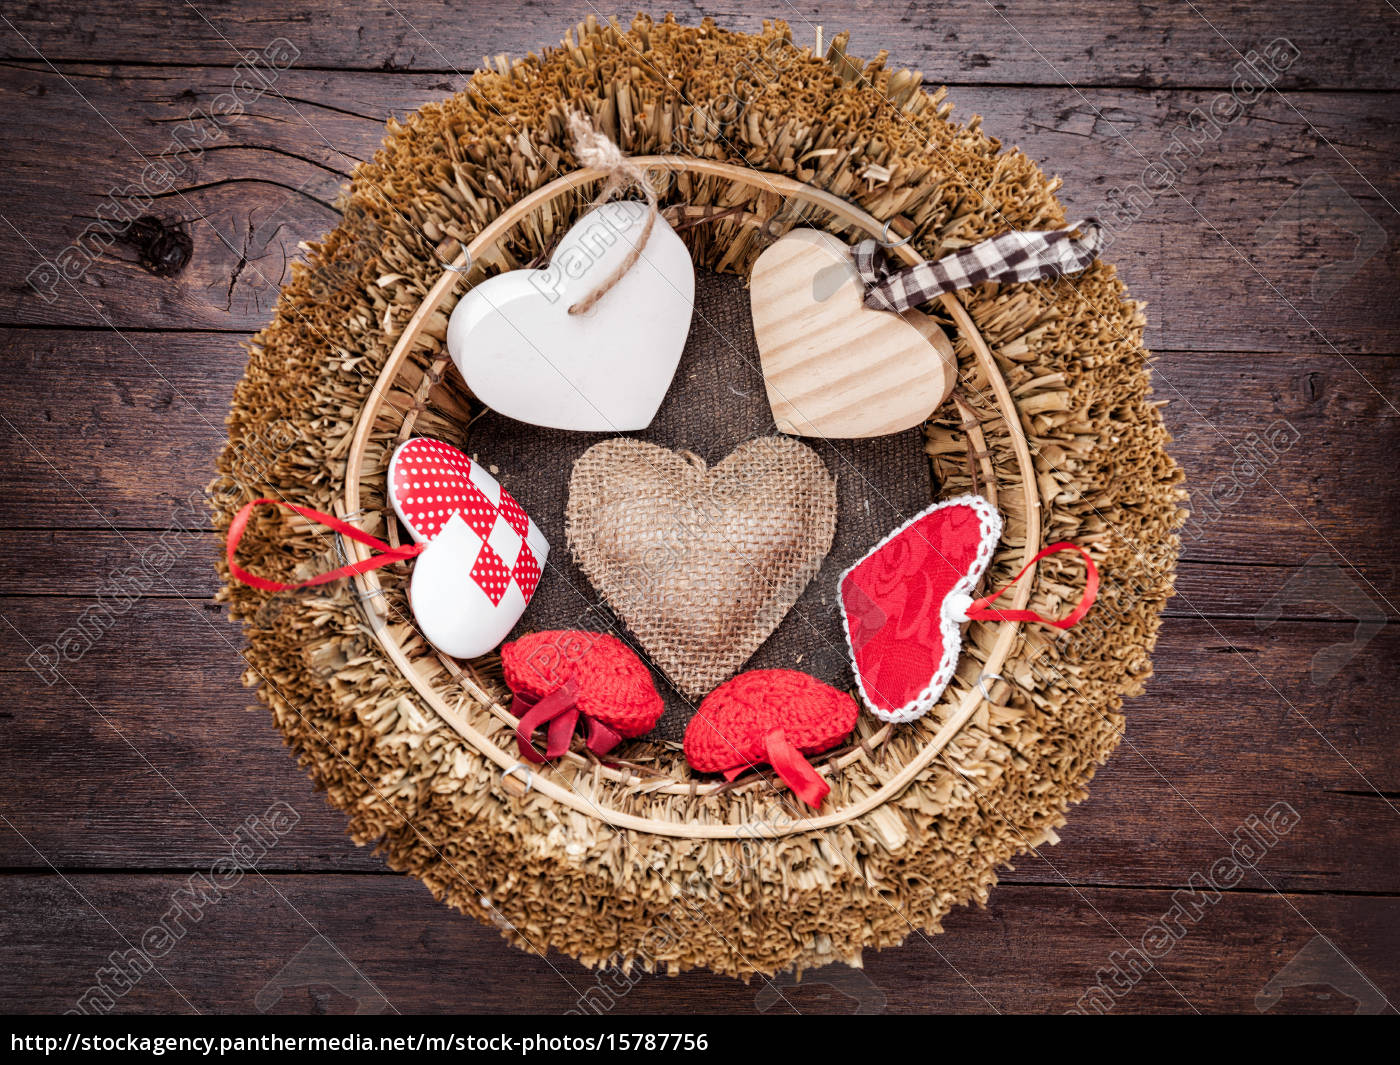 many, hearts, inside, a, wooden, basket - 15787756